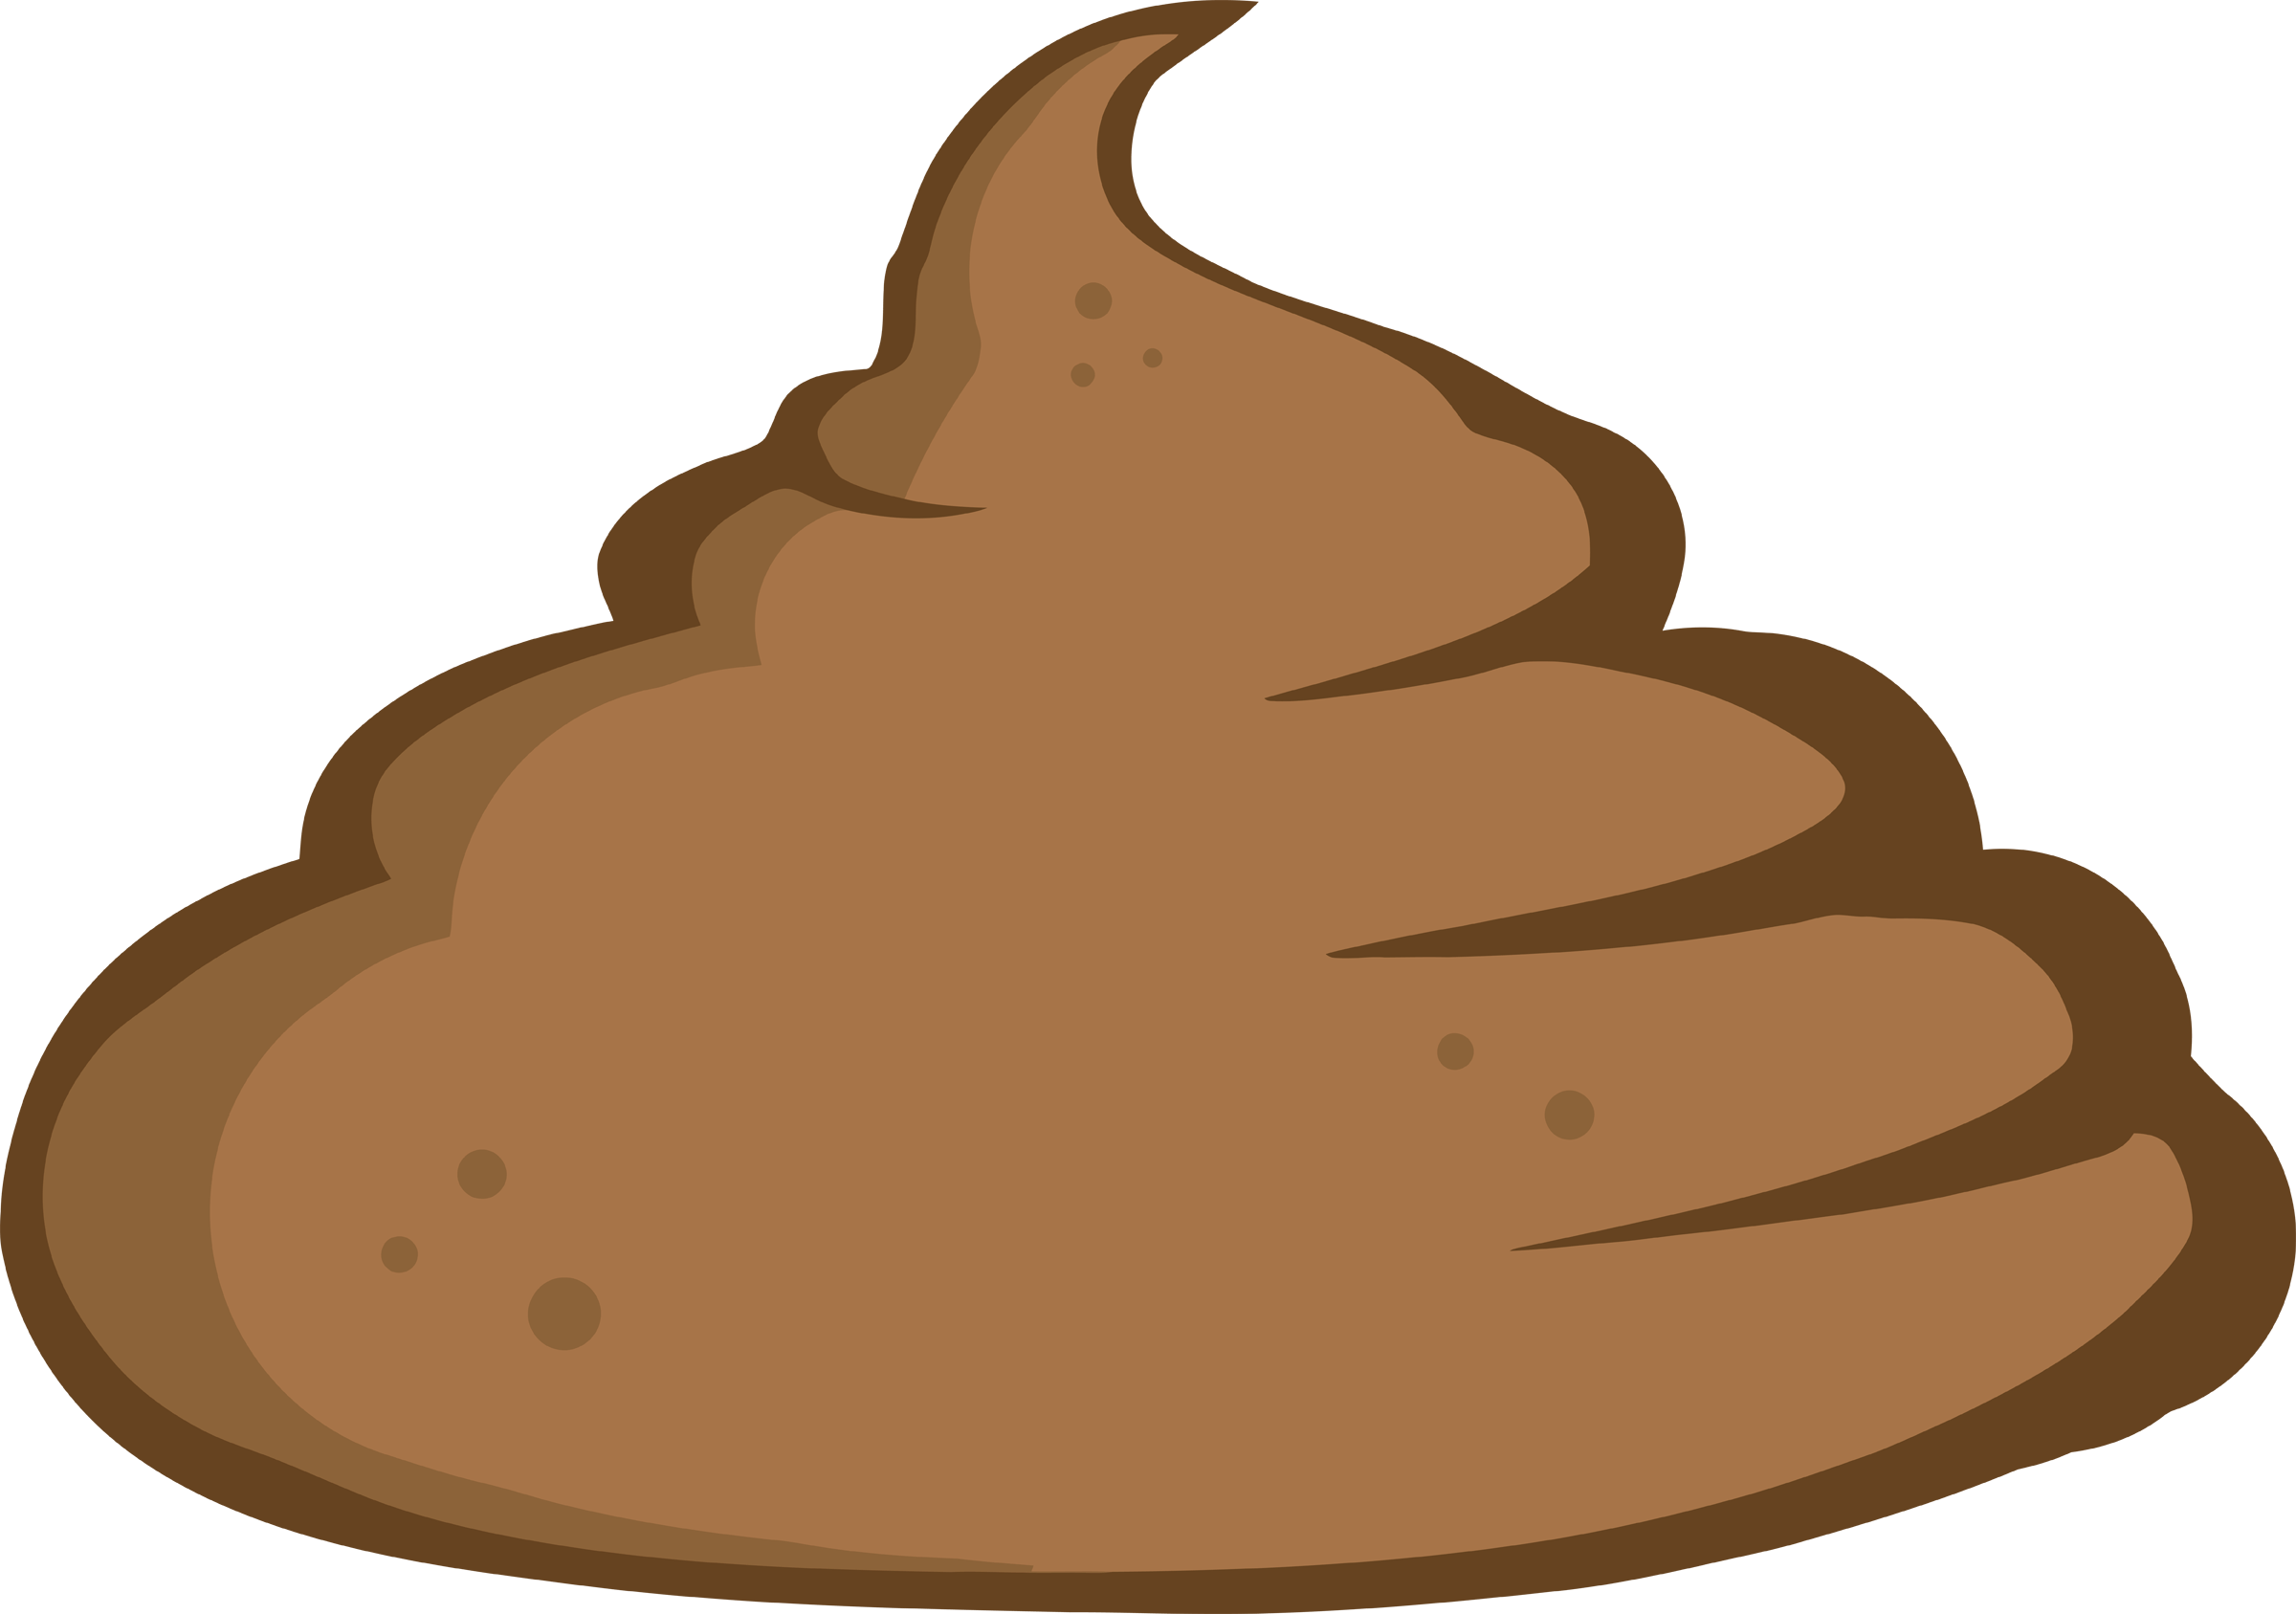 Big Poop transparent PNG.